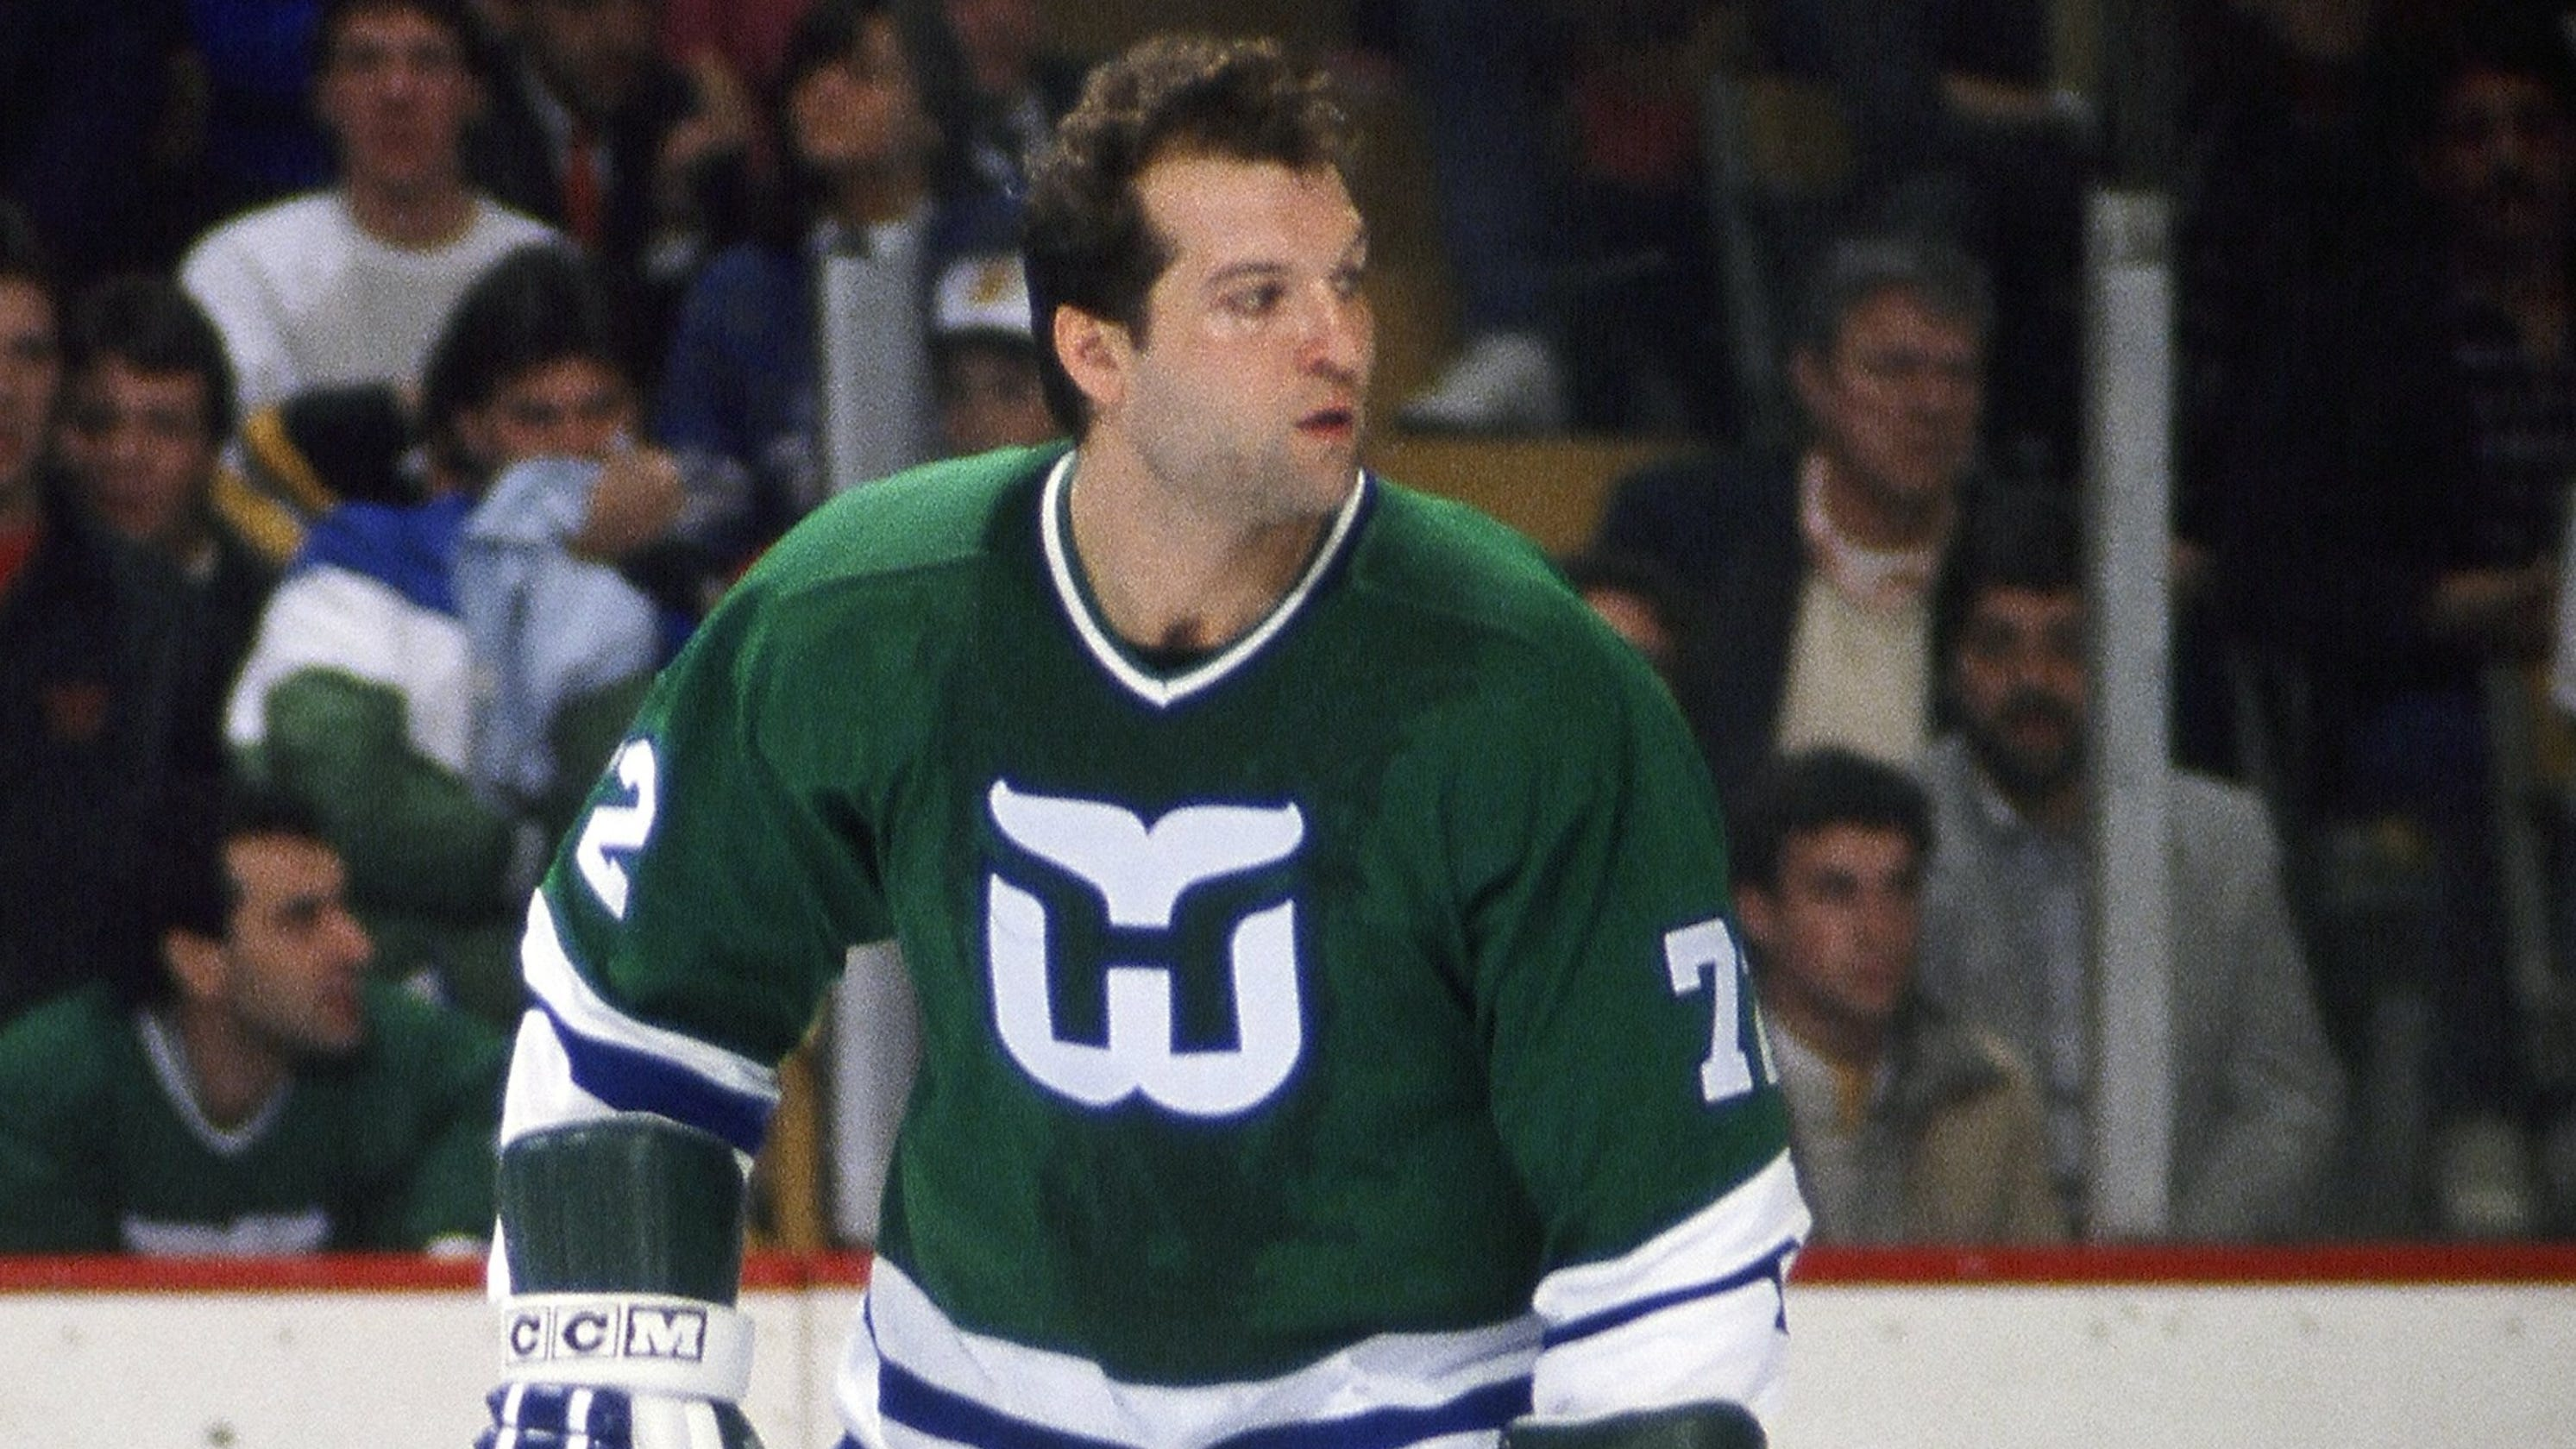 Carolina Hurricanes  Whalers Night to bring back classic green jersey d2d2a4276